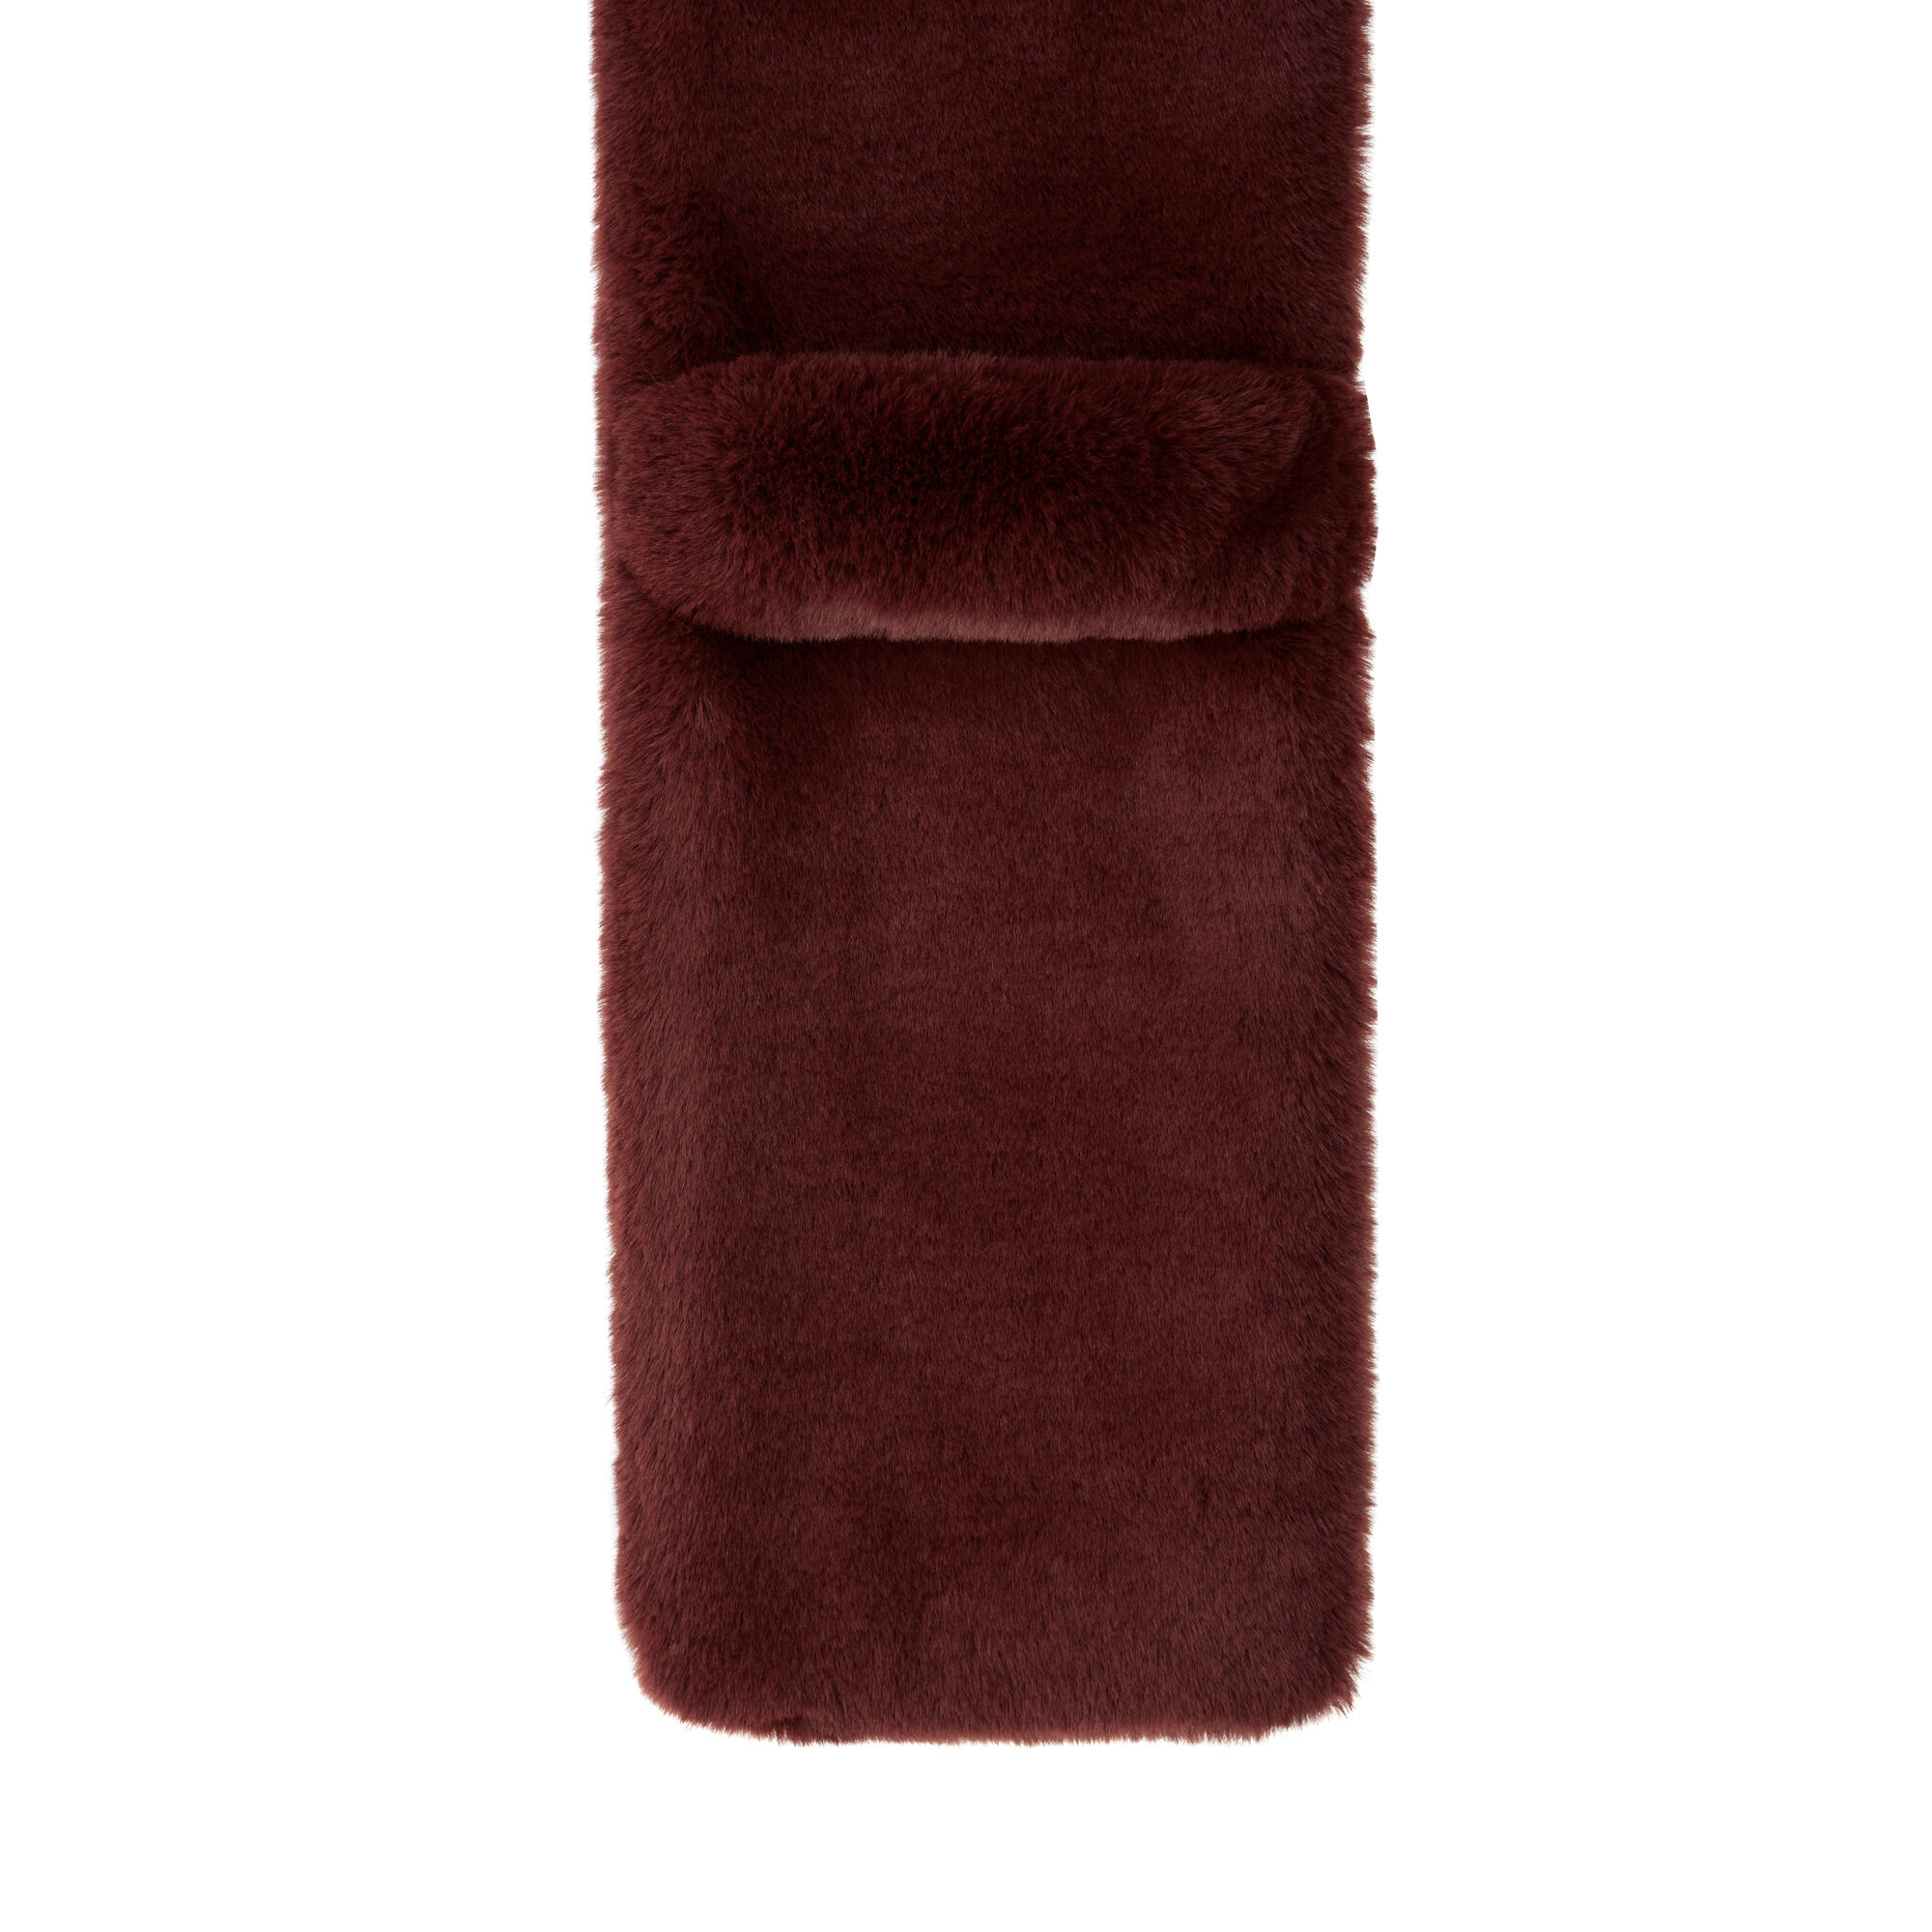 Warehouse, FAUX FUR SCARF Berry 2